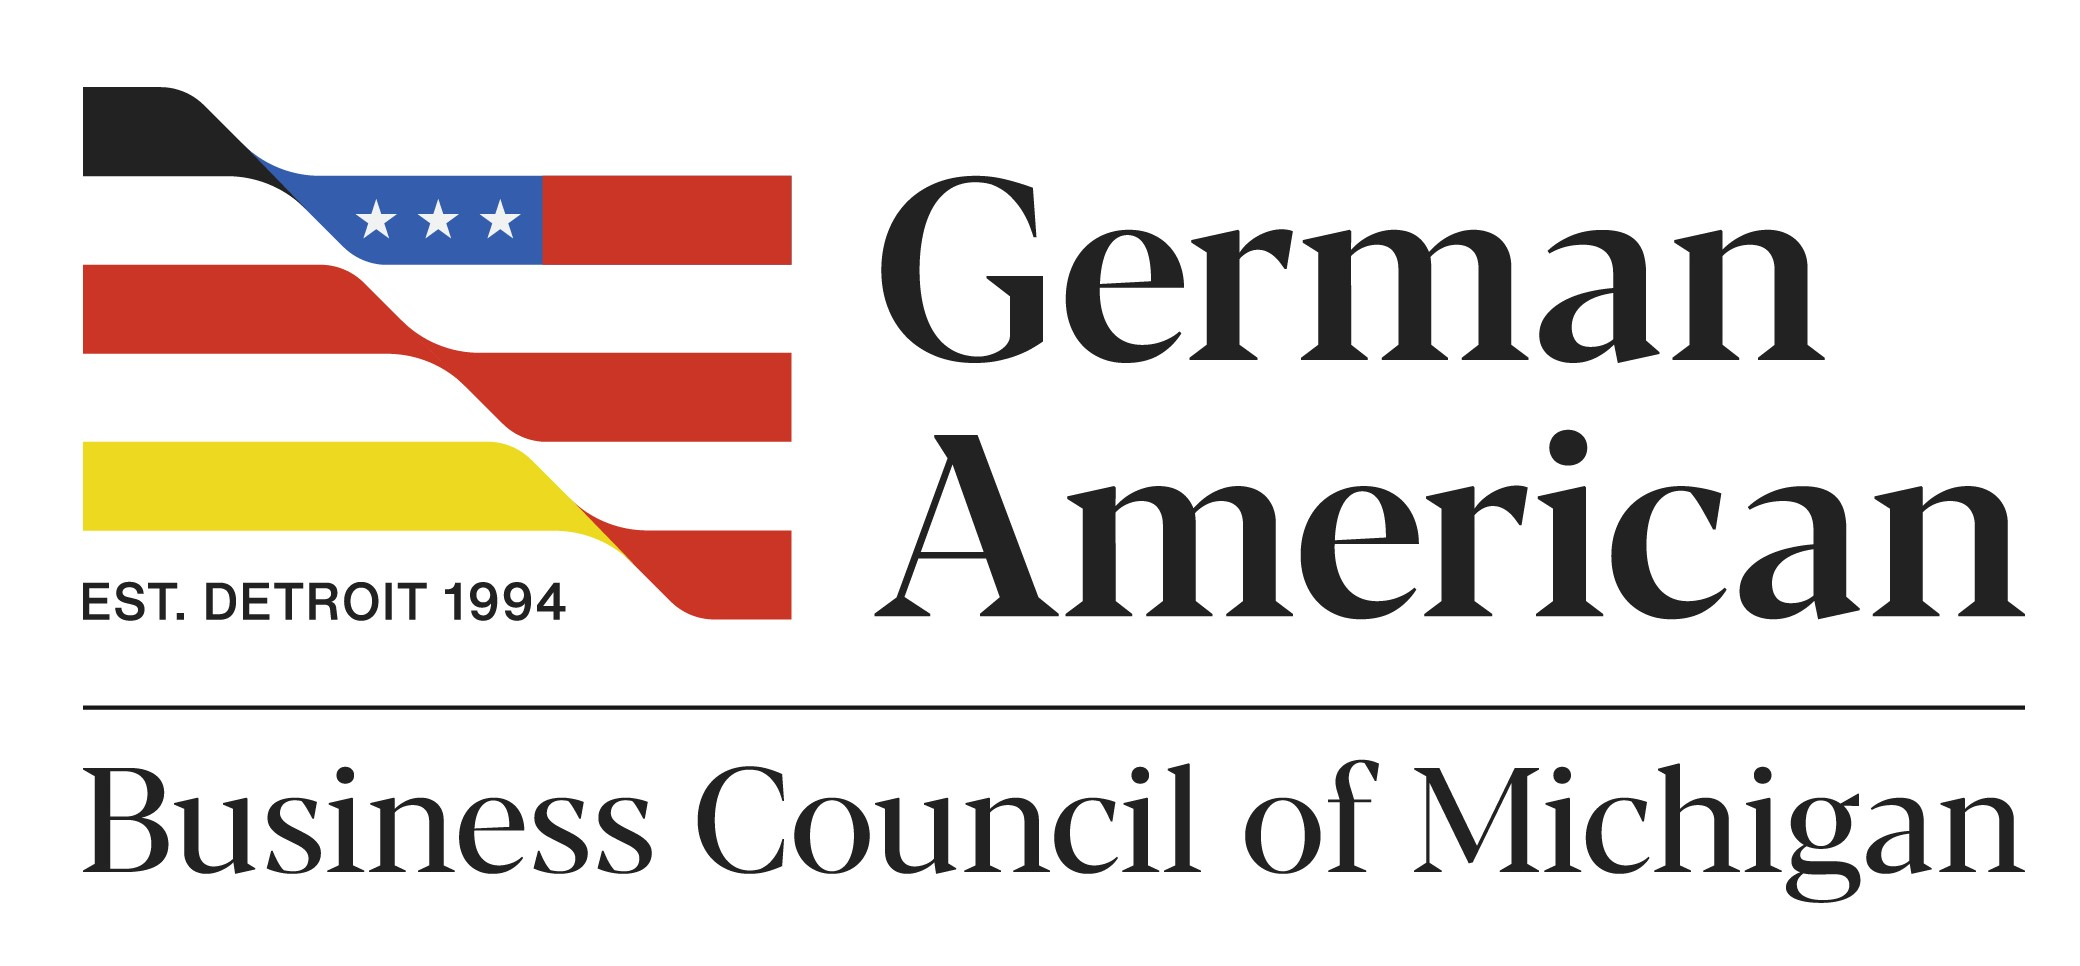 German American Business Council of Michigan